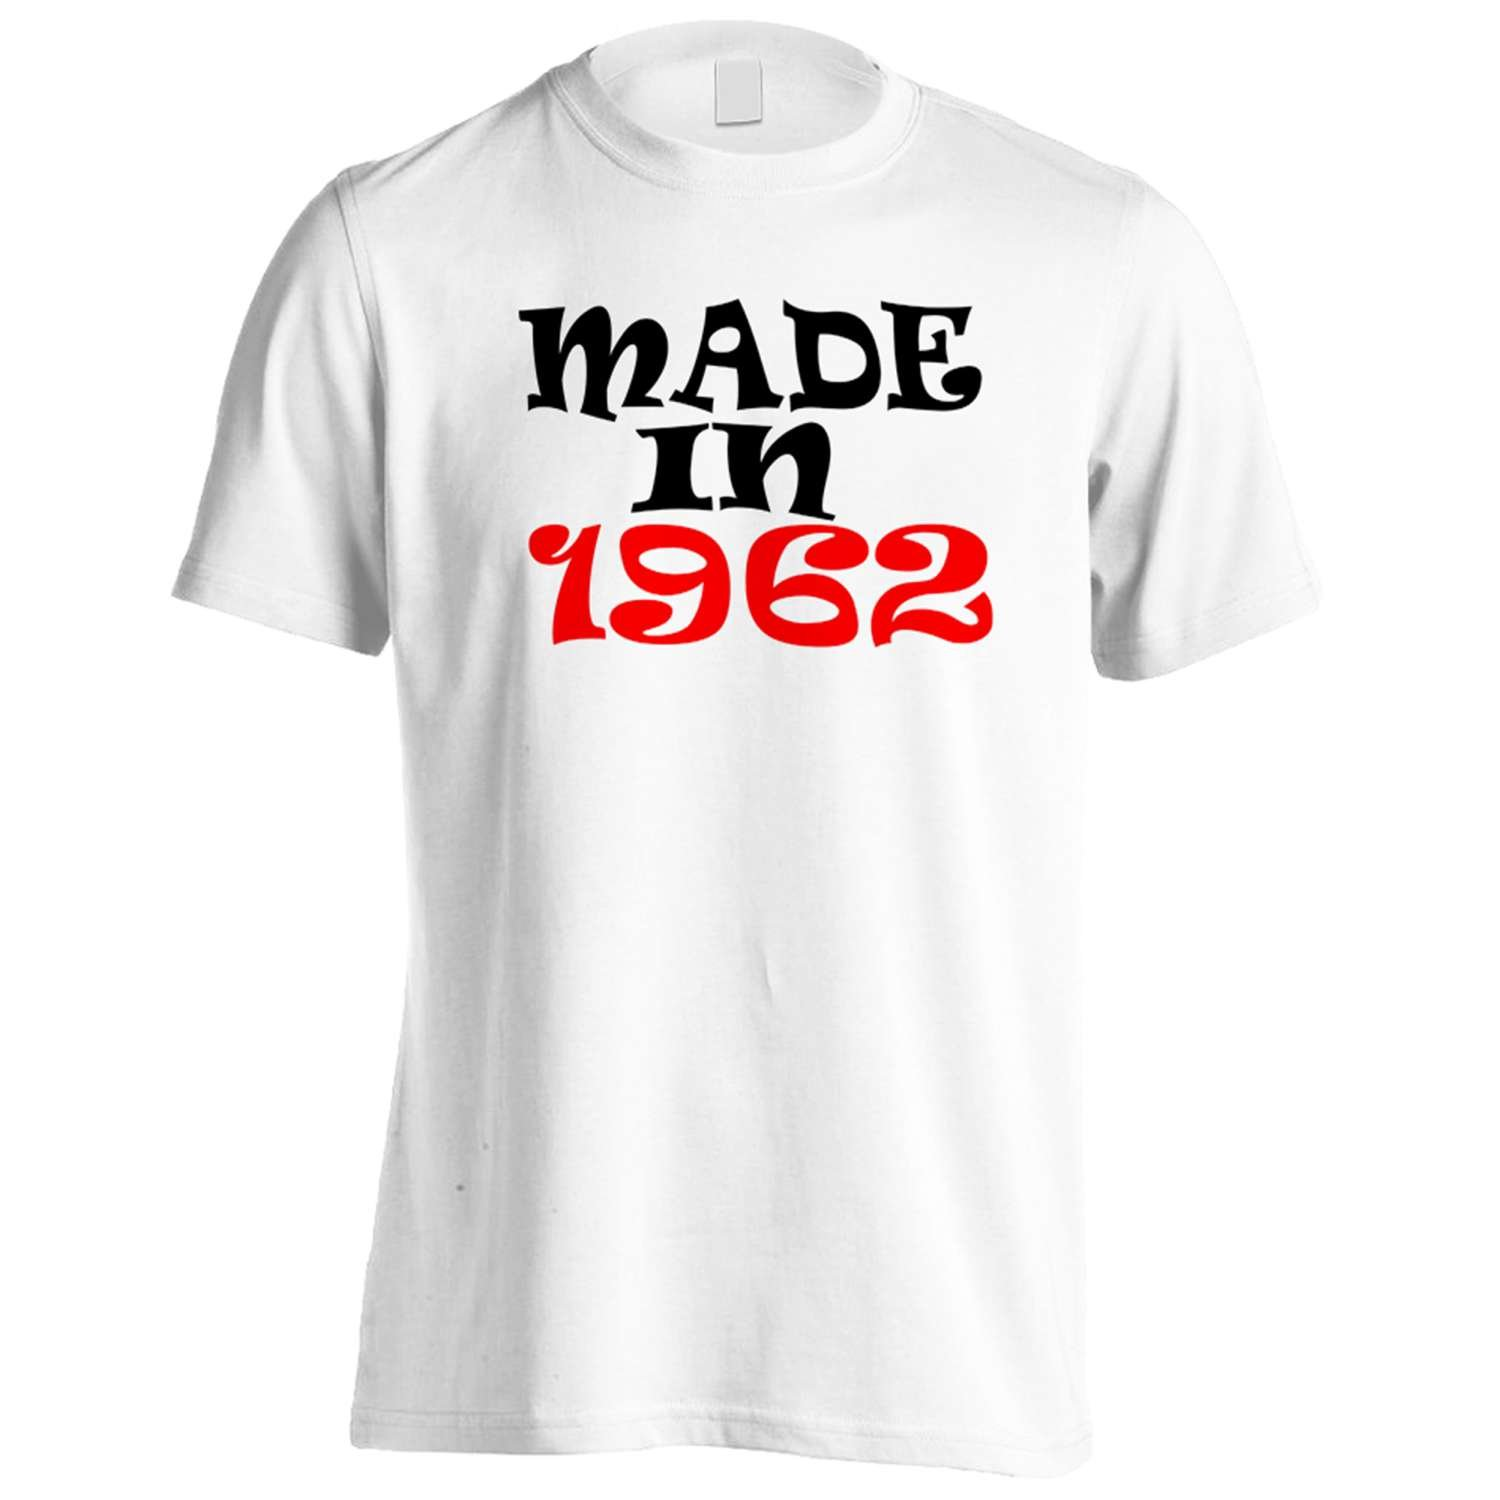 MADE IN 1975 Funny Novelty New Men's T-Shirt Tee i91m